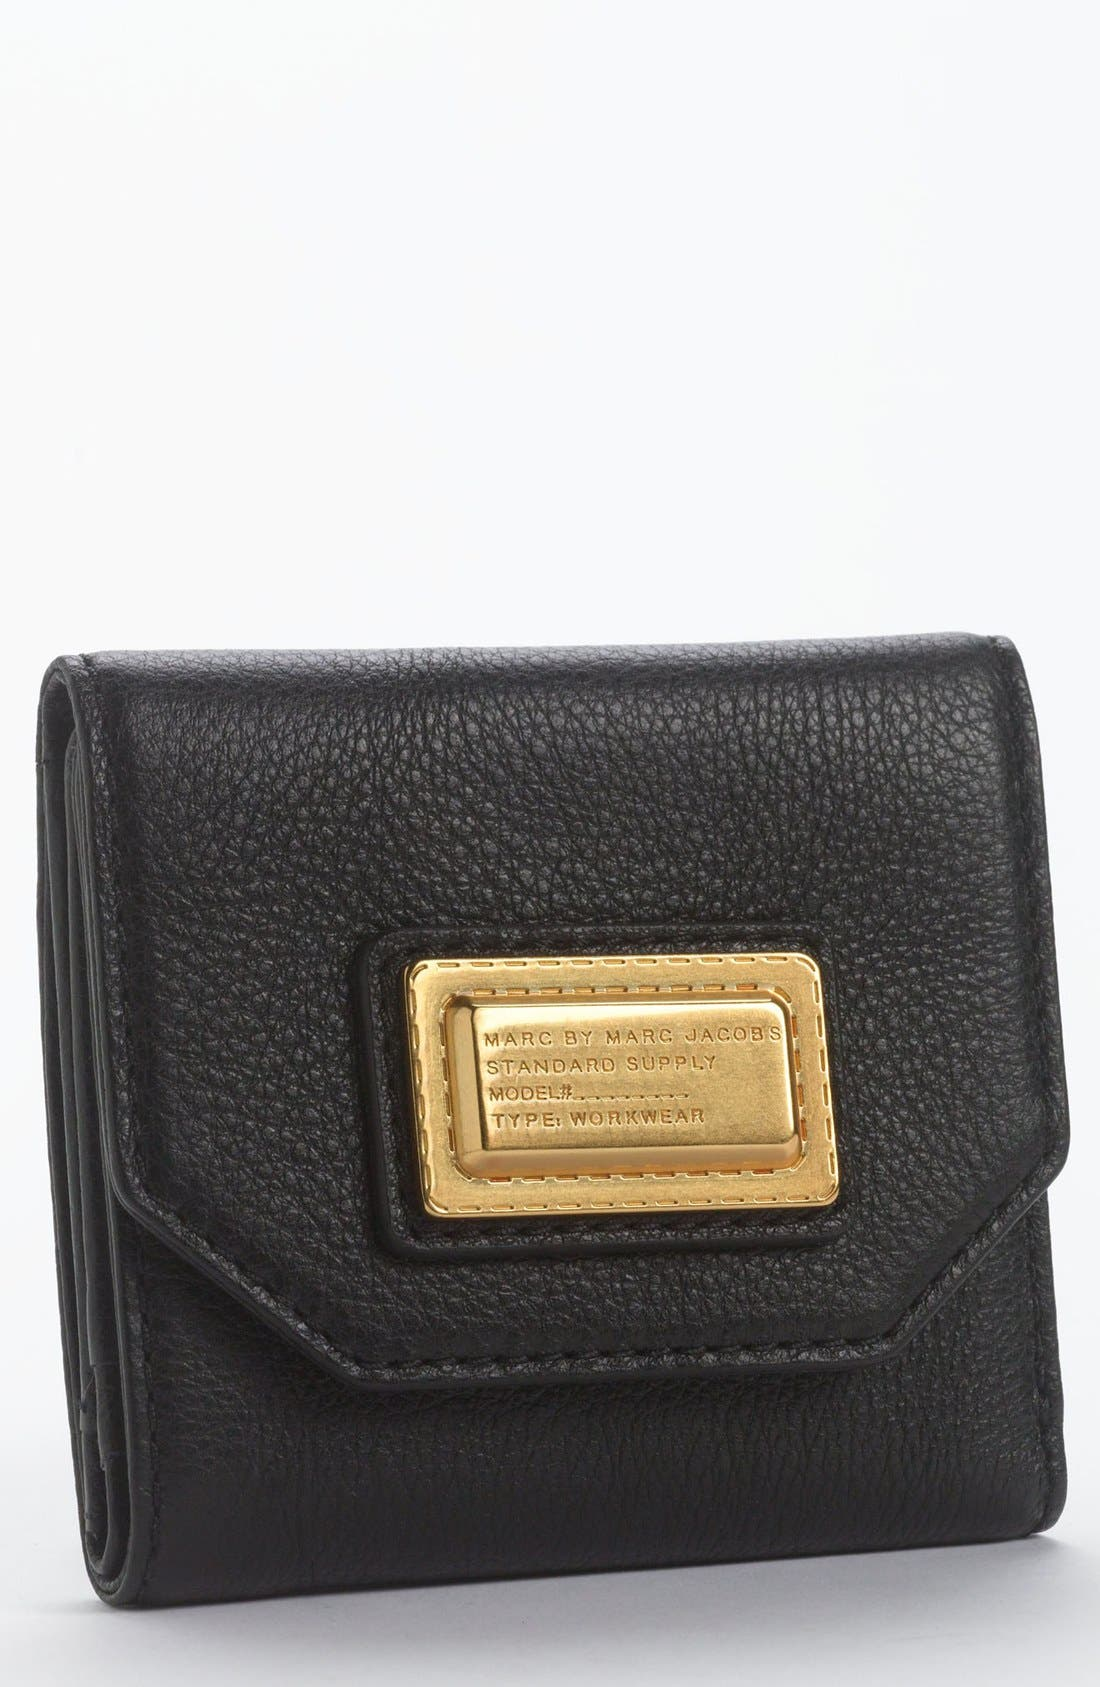 MARC BY MARC JACOBS Bifold French Wallet, Main, color, 001